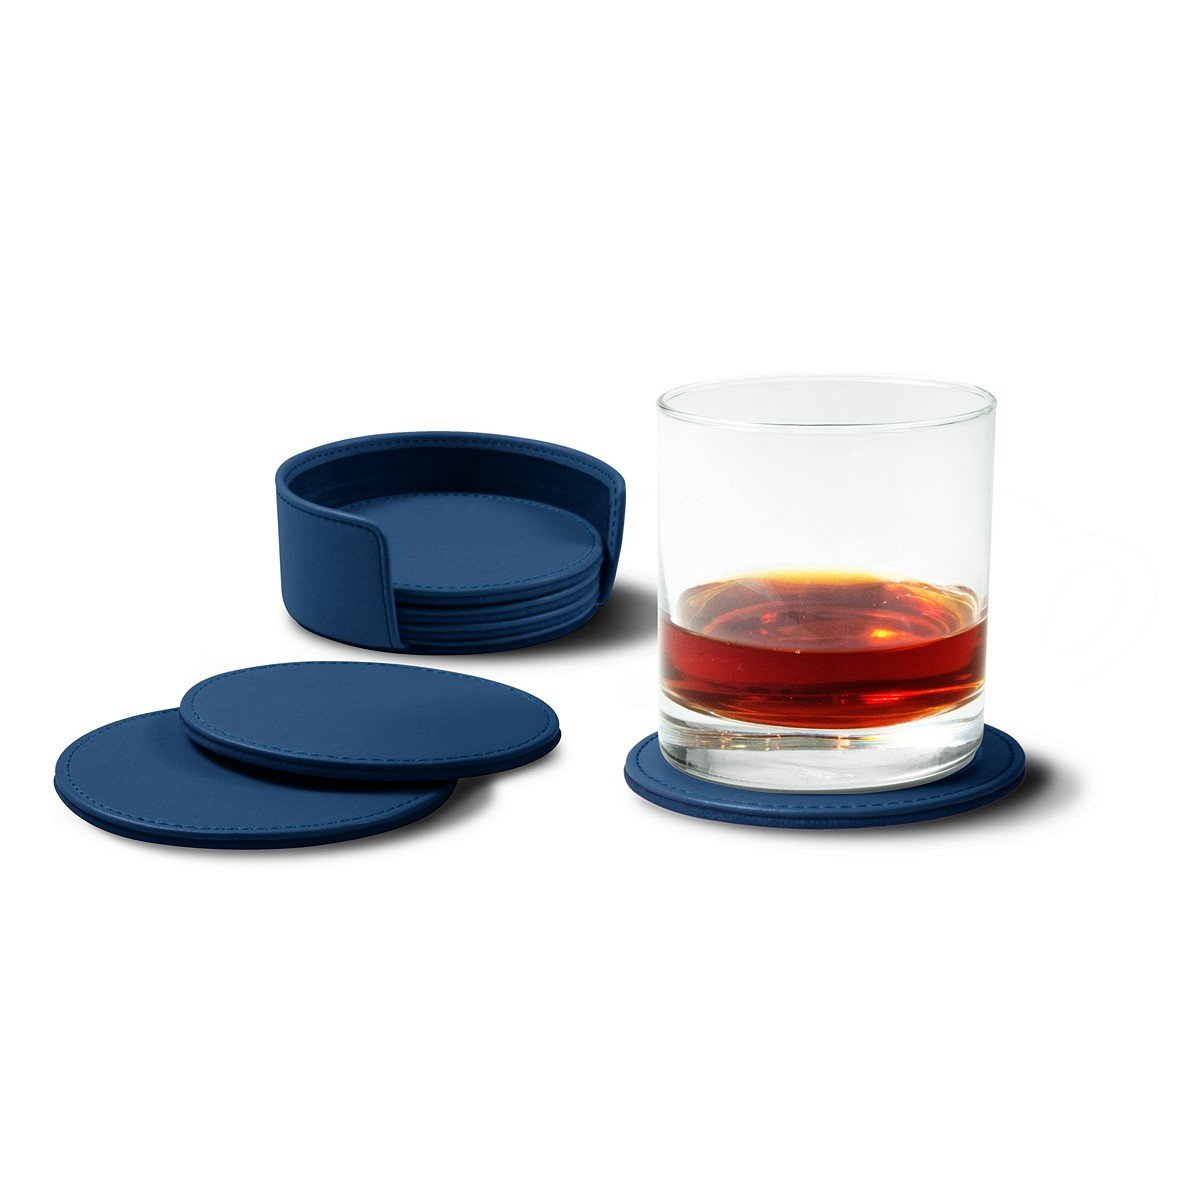 Lucrin - Set of 6 Round Real Leather Coasters with Coaster Holder - Royal Blue - Smooth Leather